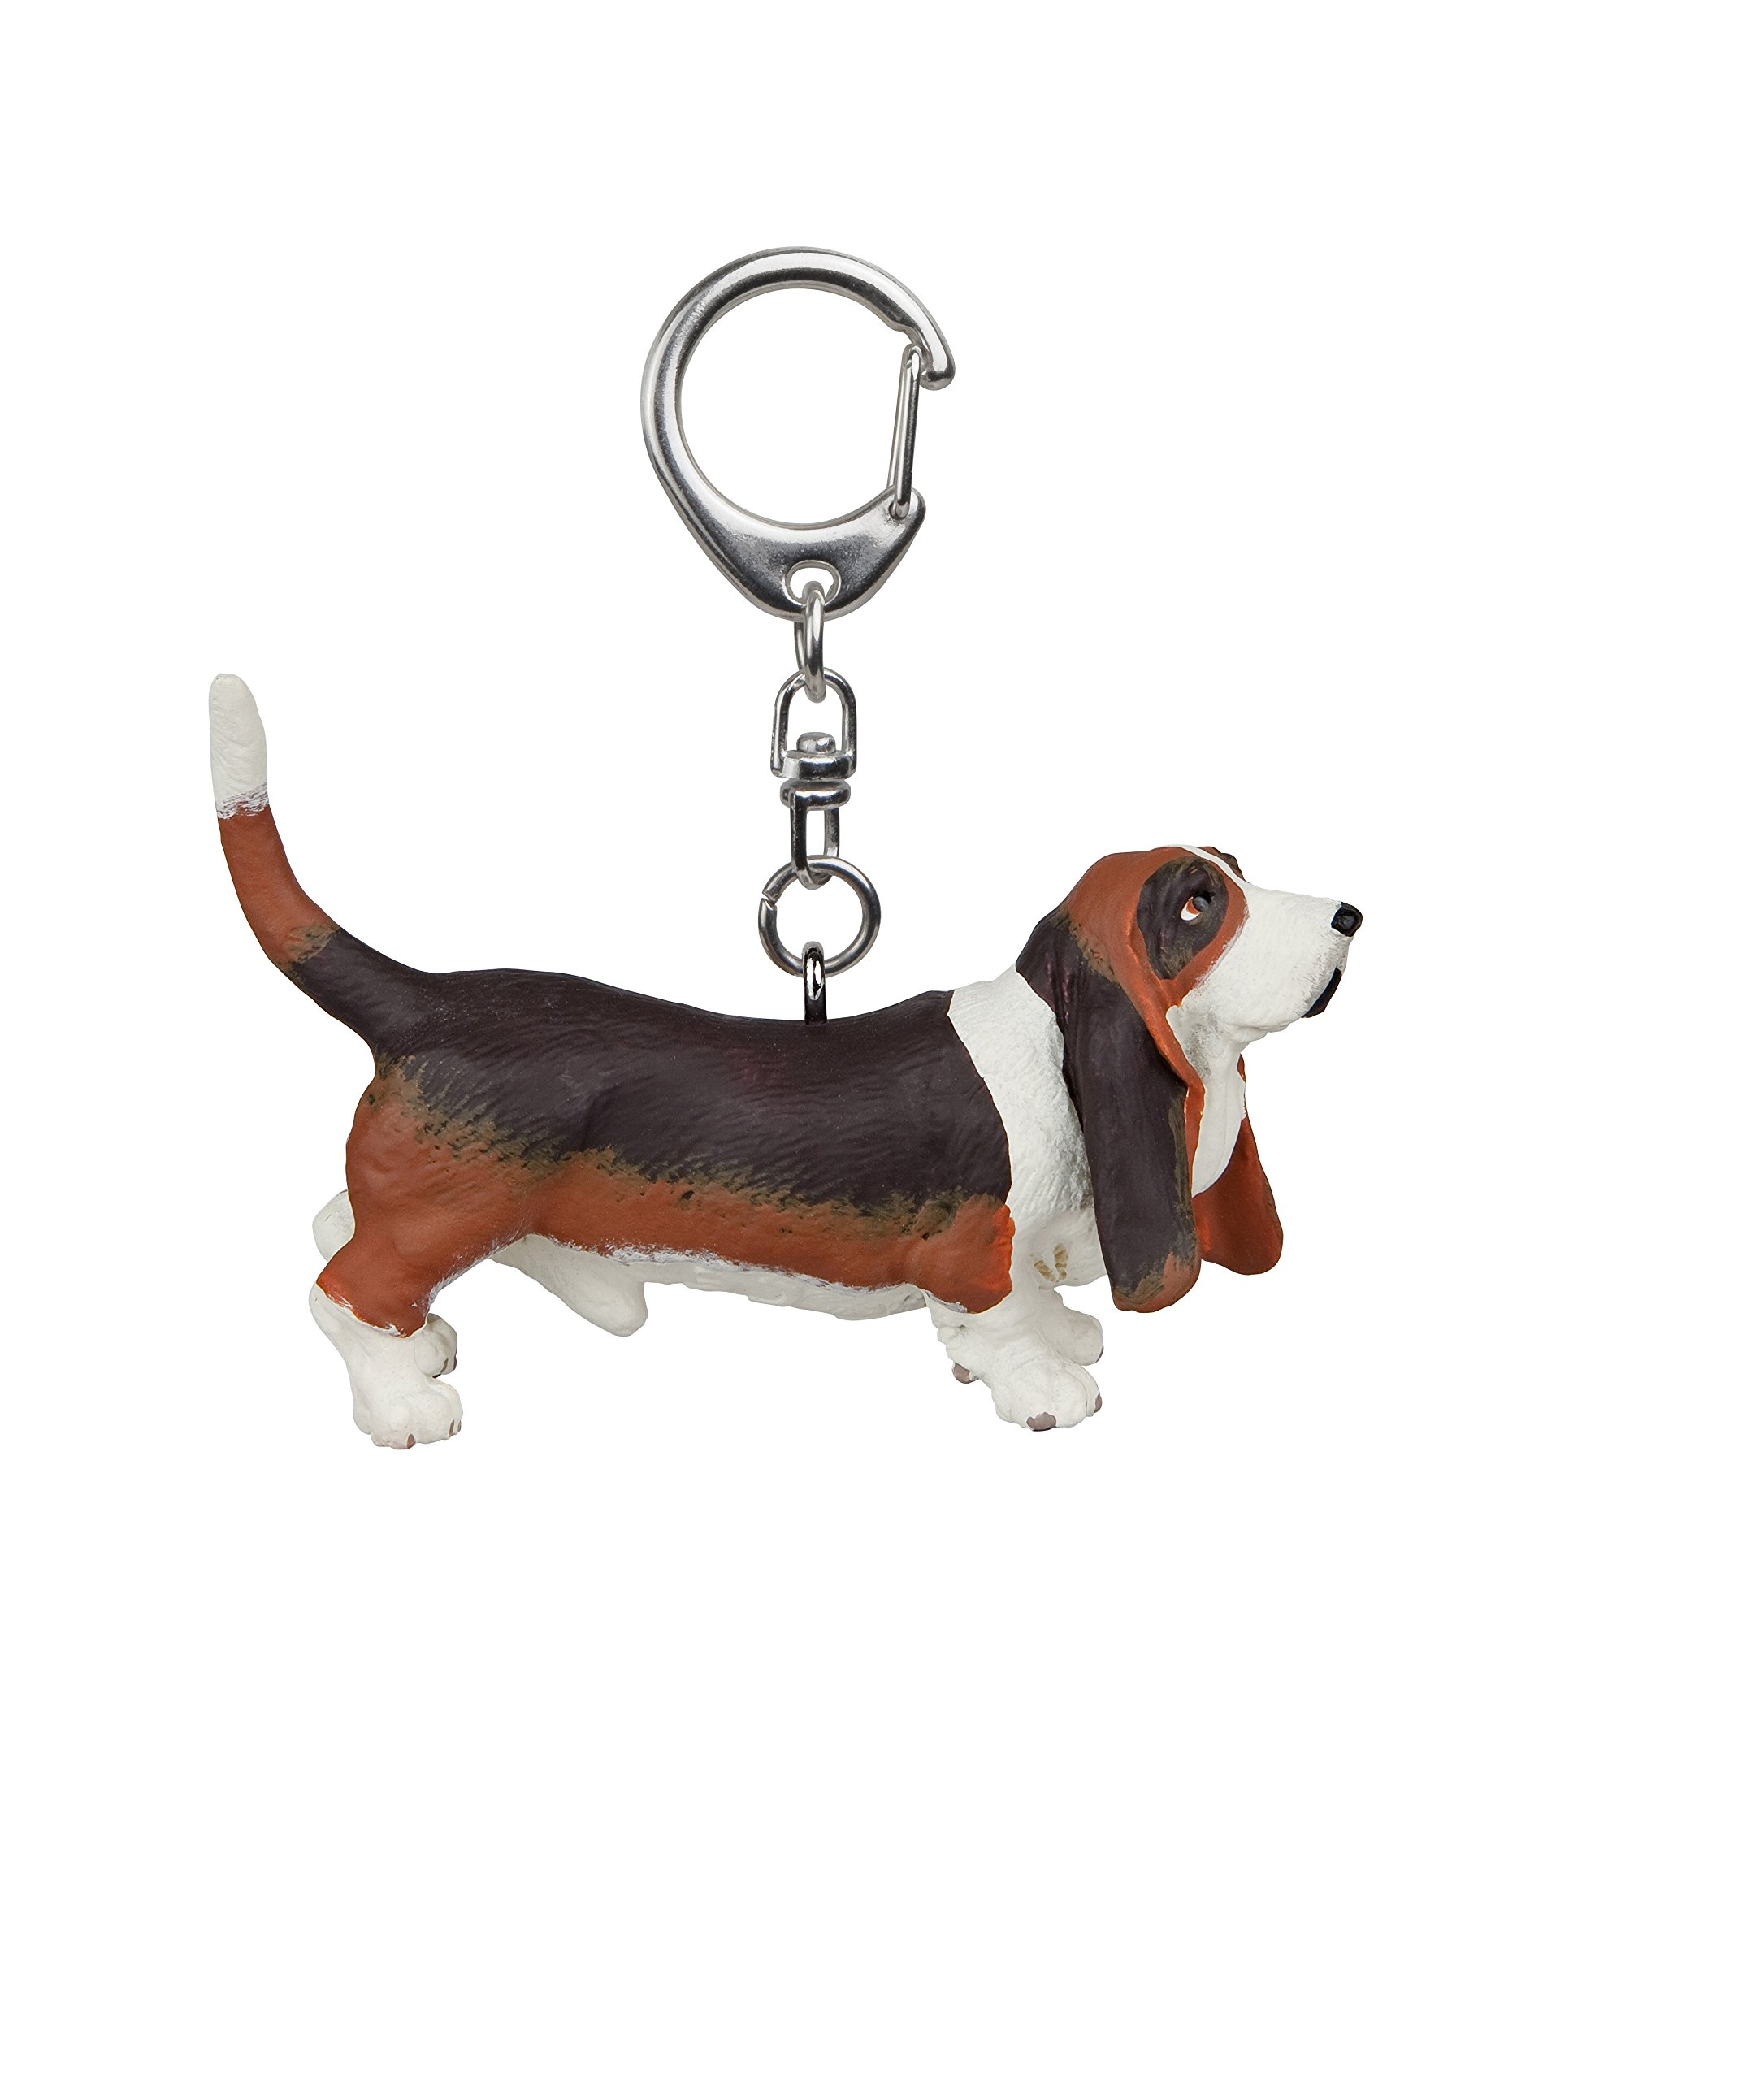 Papo 02004 Key rings Basset hound Figurine, Multicolour